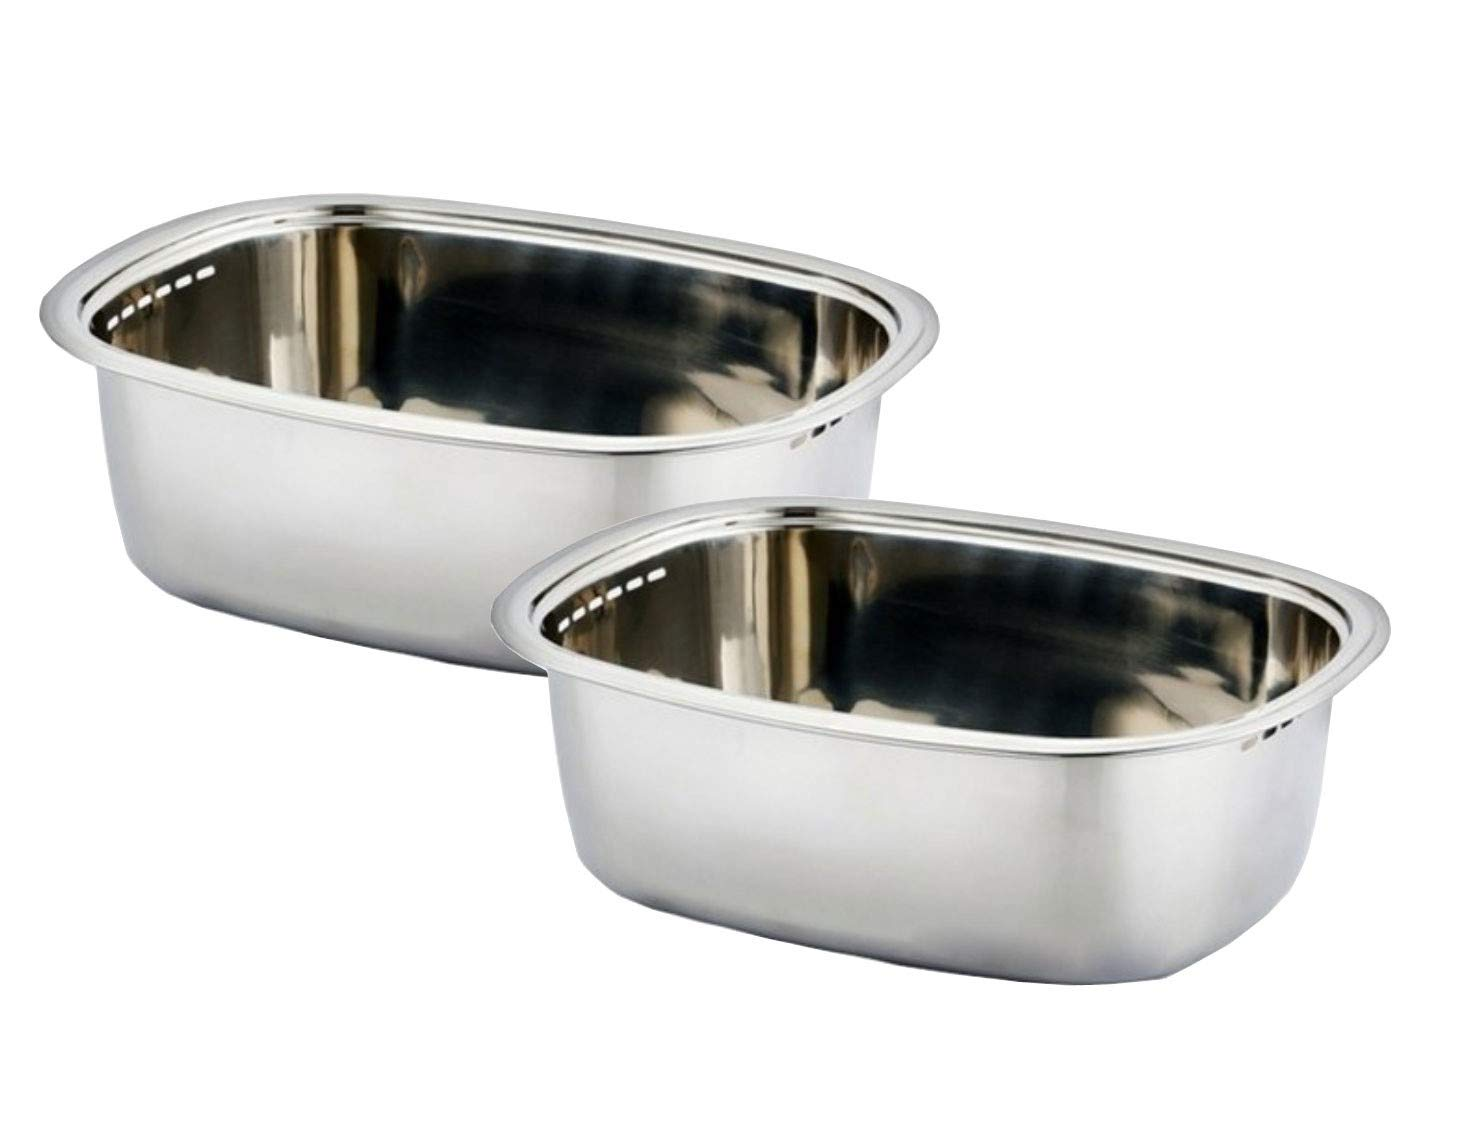 Kitchen Flower Stainless Steel Washing-up Bowl Multi-purpose Dish Tub for Sink Wash Basins Dishpan for Sink